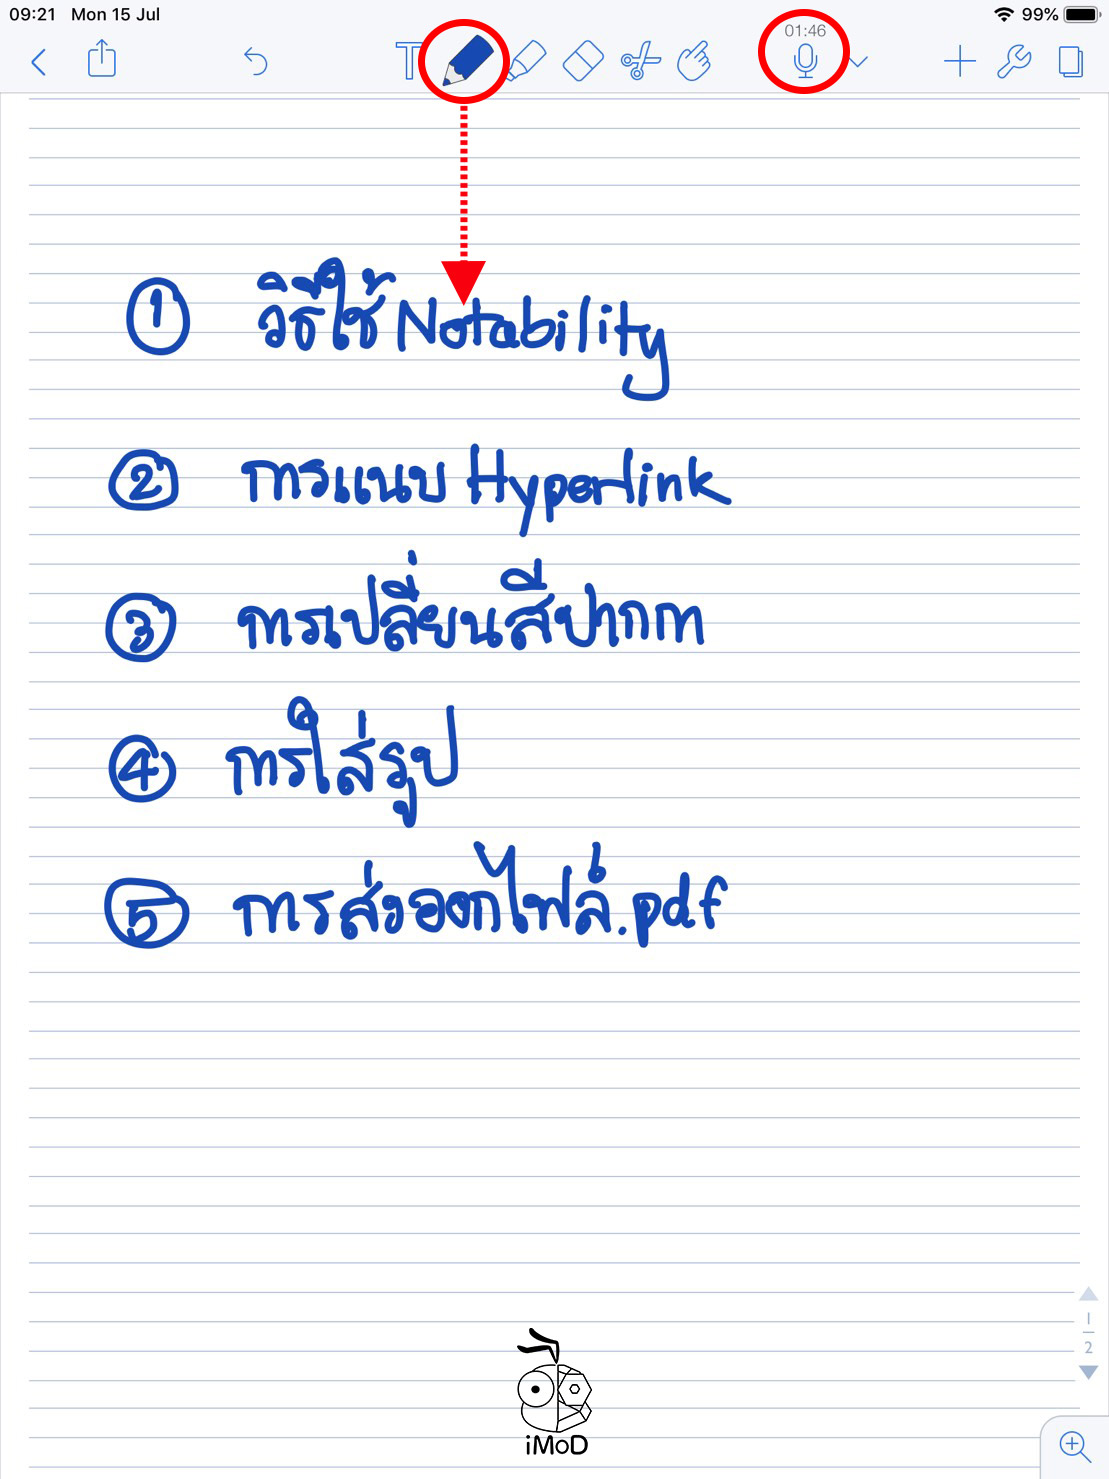 Record Notability 1